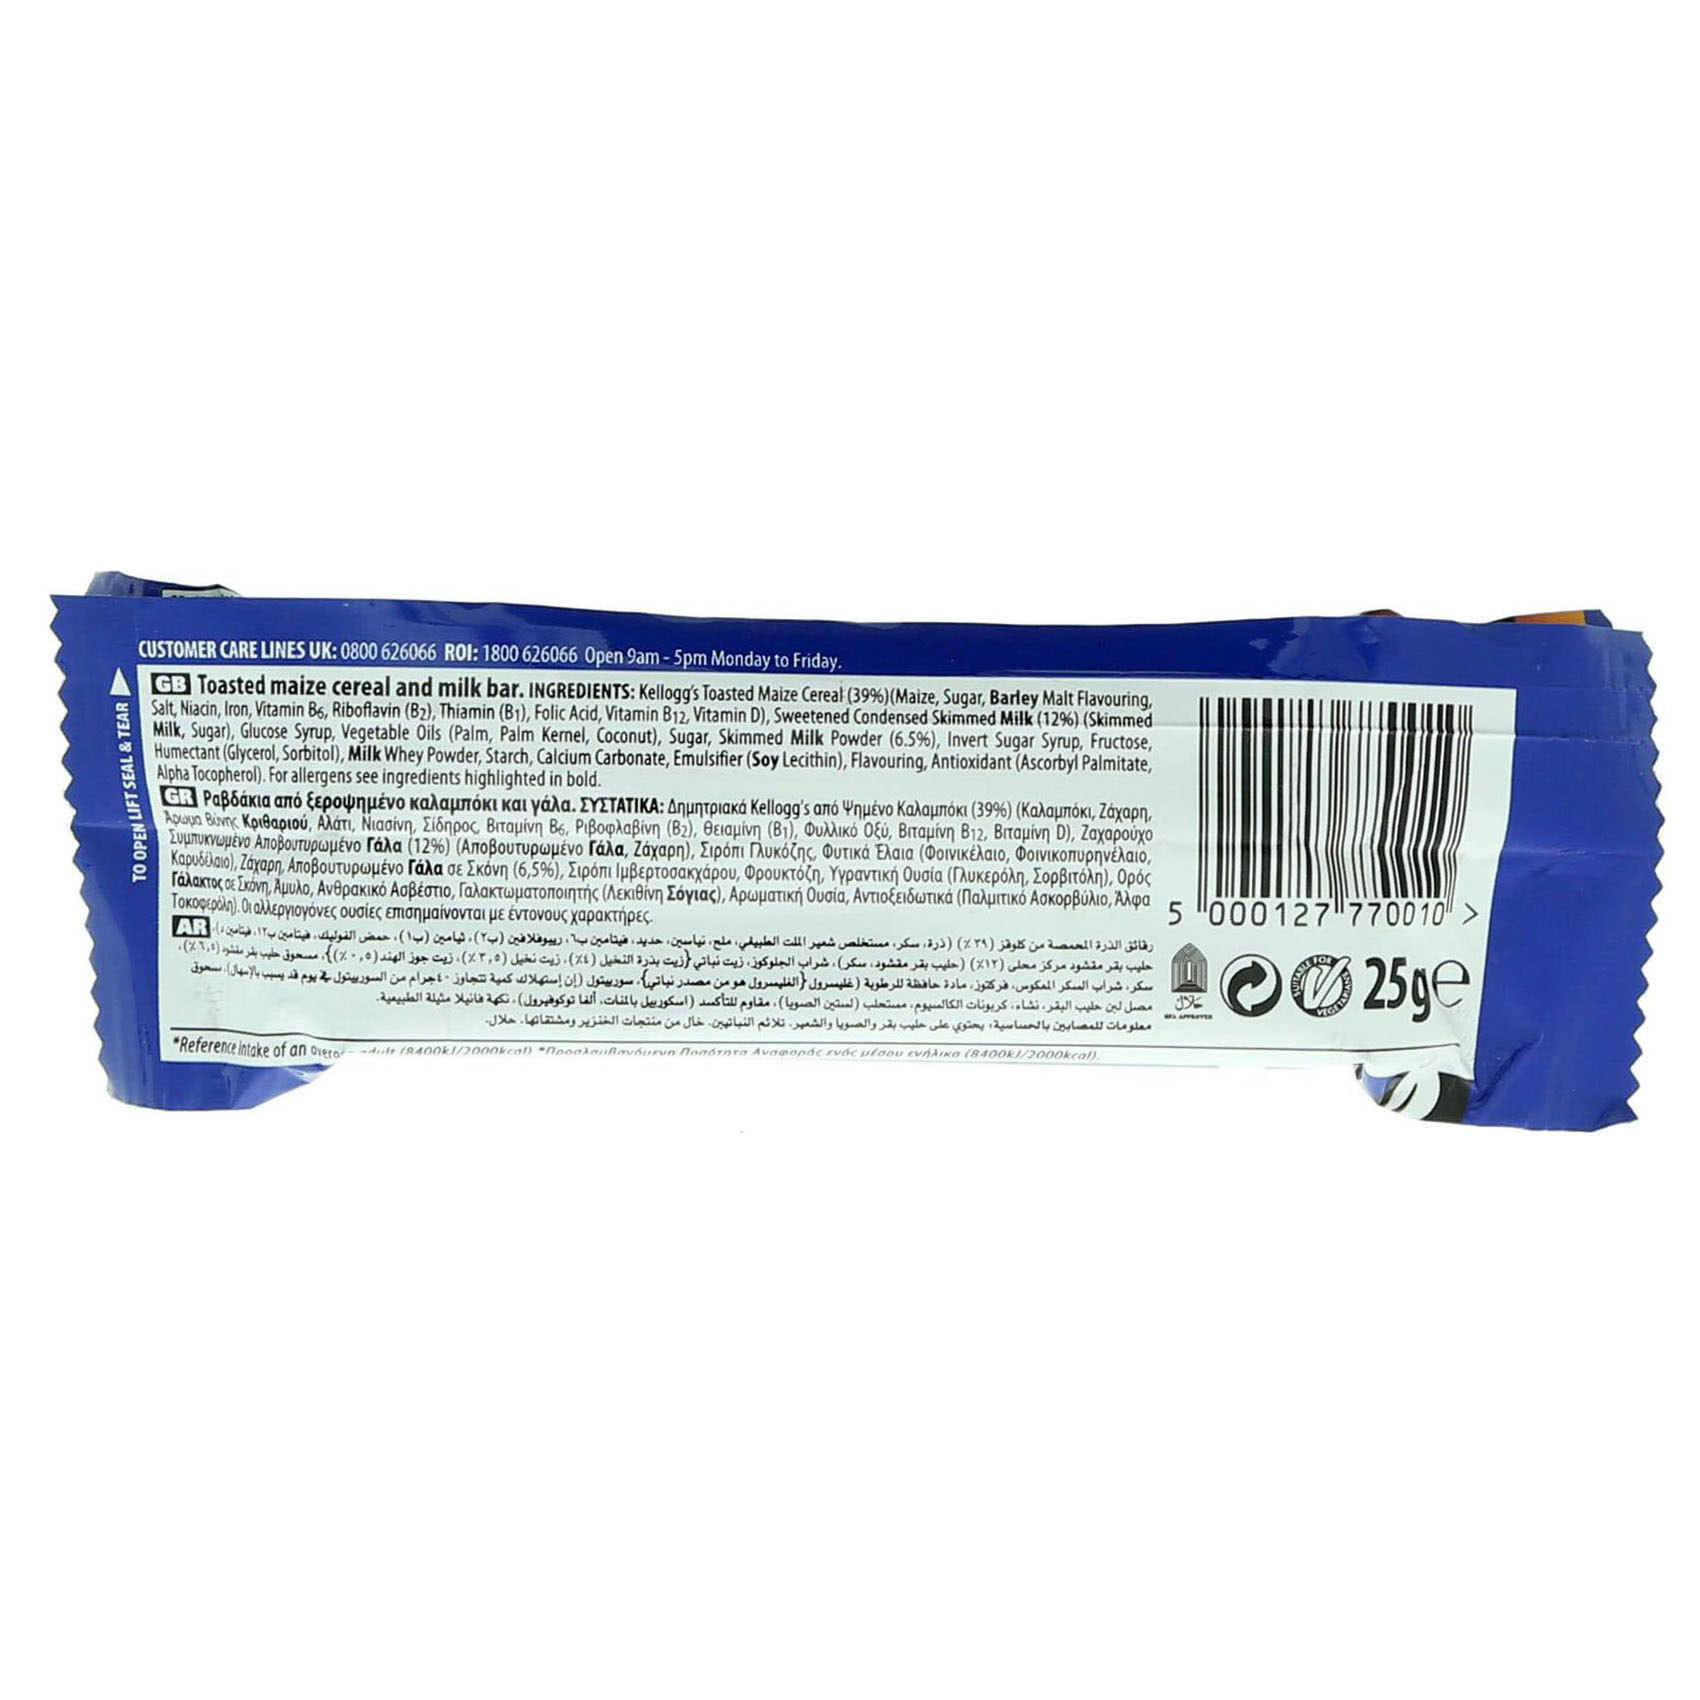 KELLOGG'S FROSTIES BAR 25G